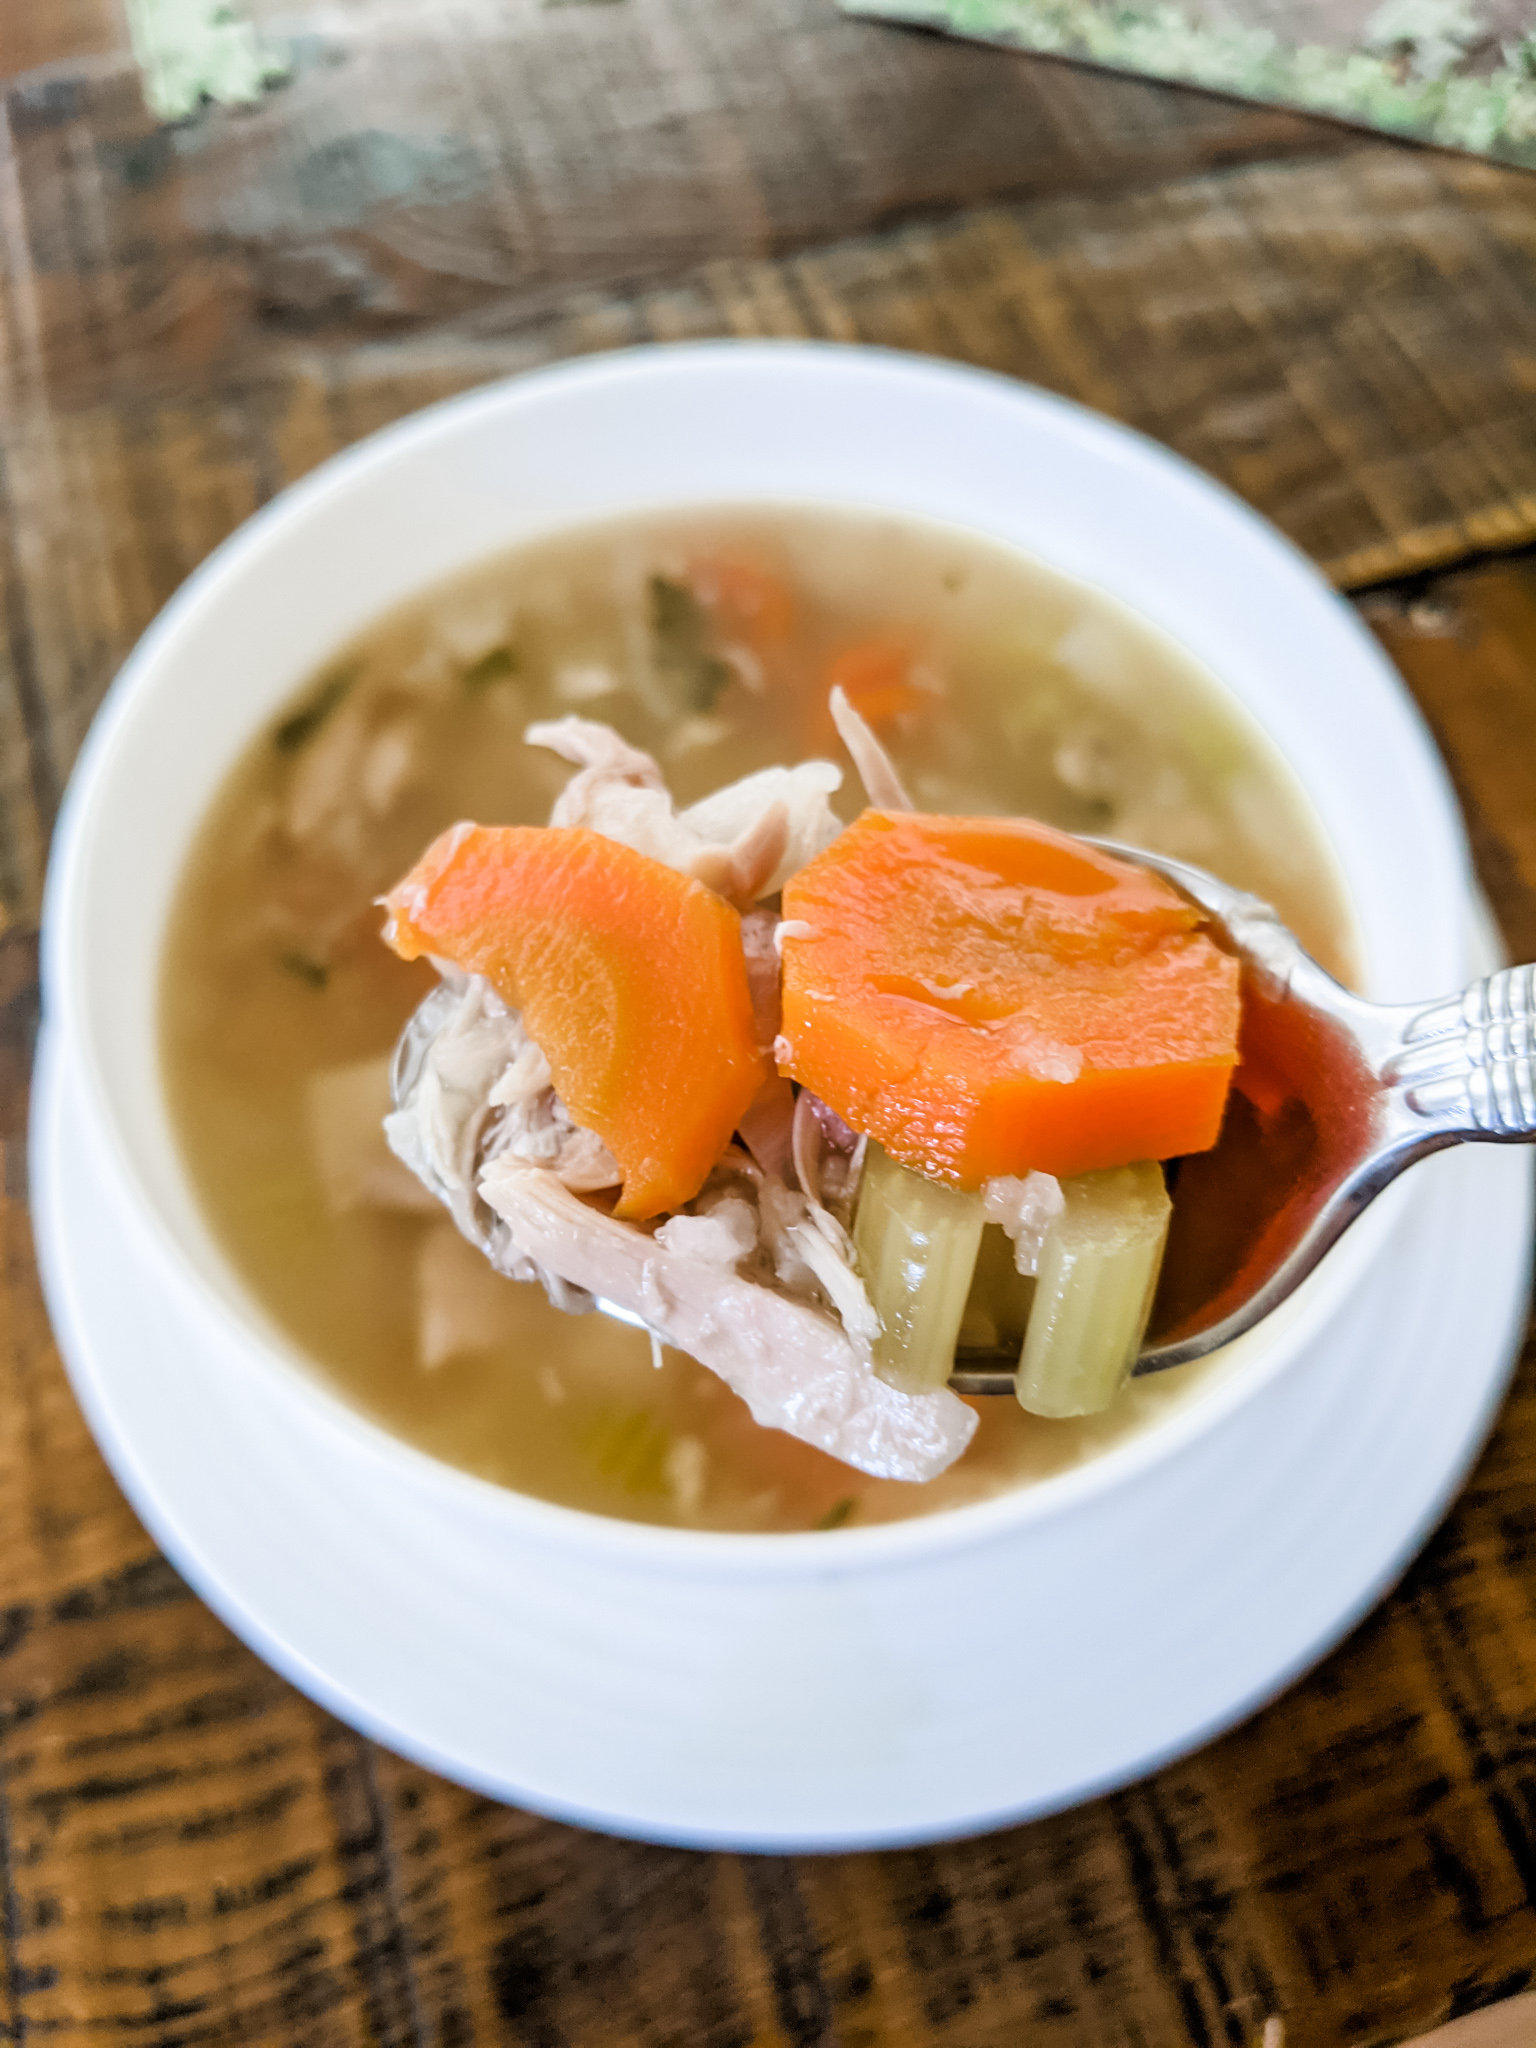 A bowl of the Leftover Turkey Soup Recipe with a spoonful being lifted out